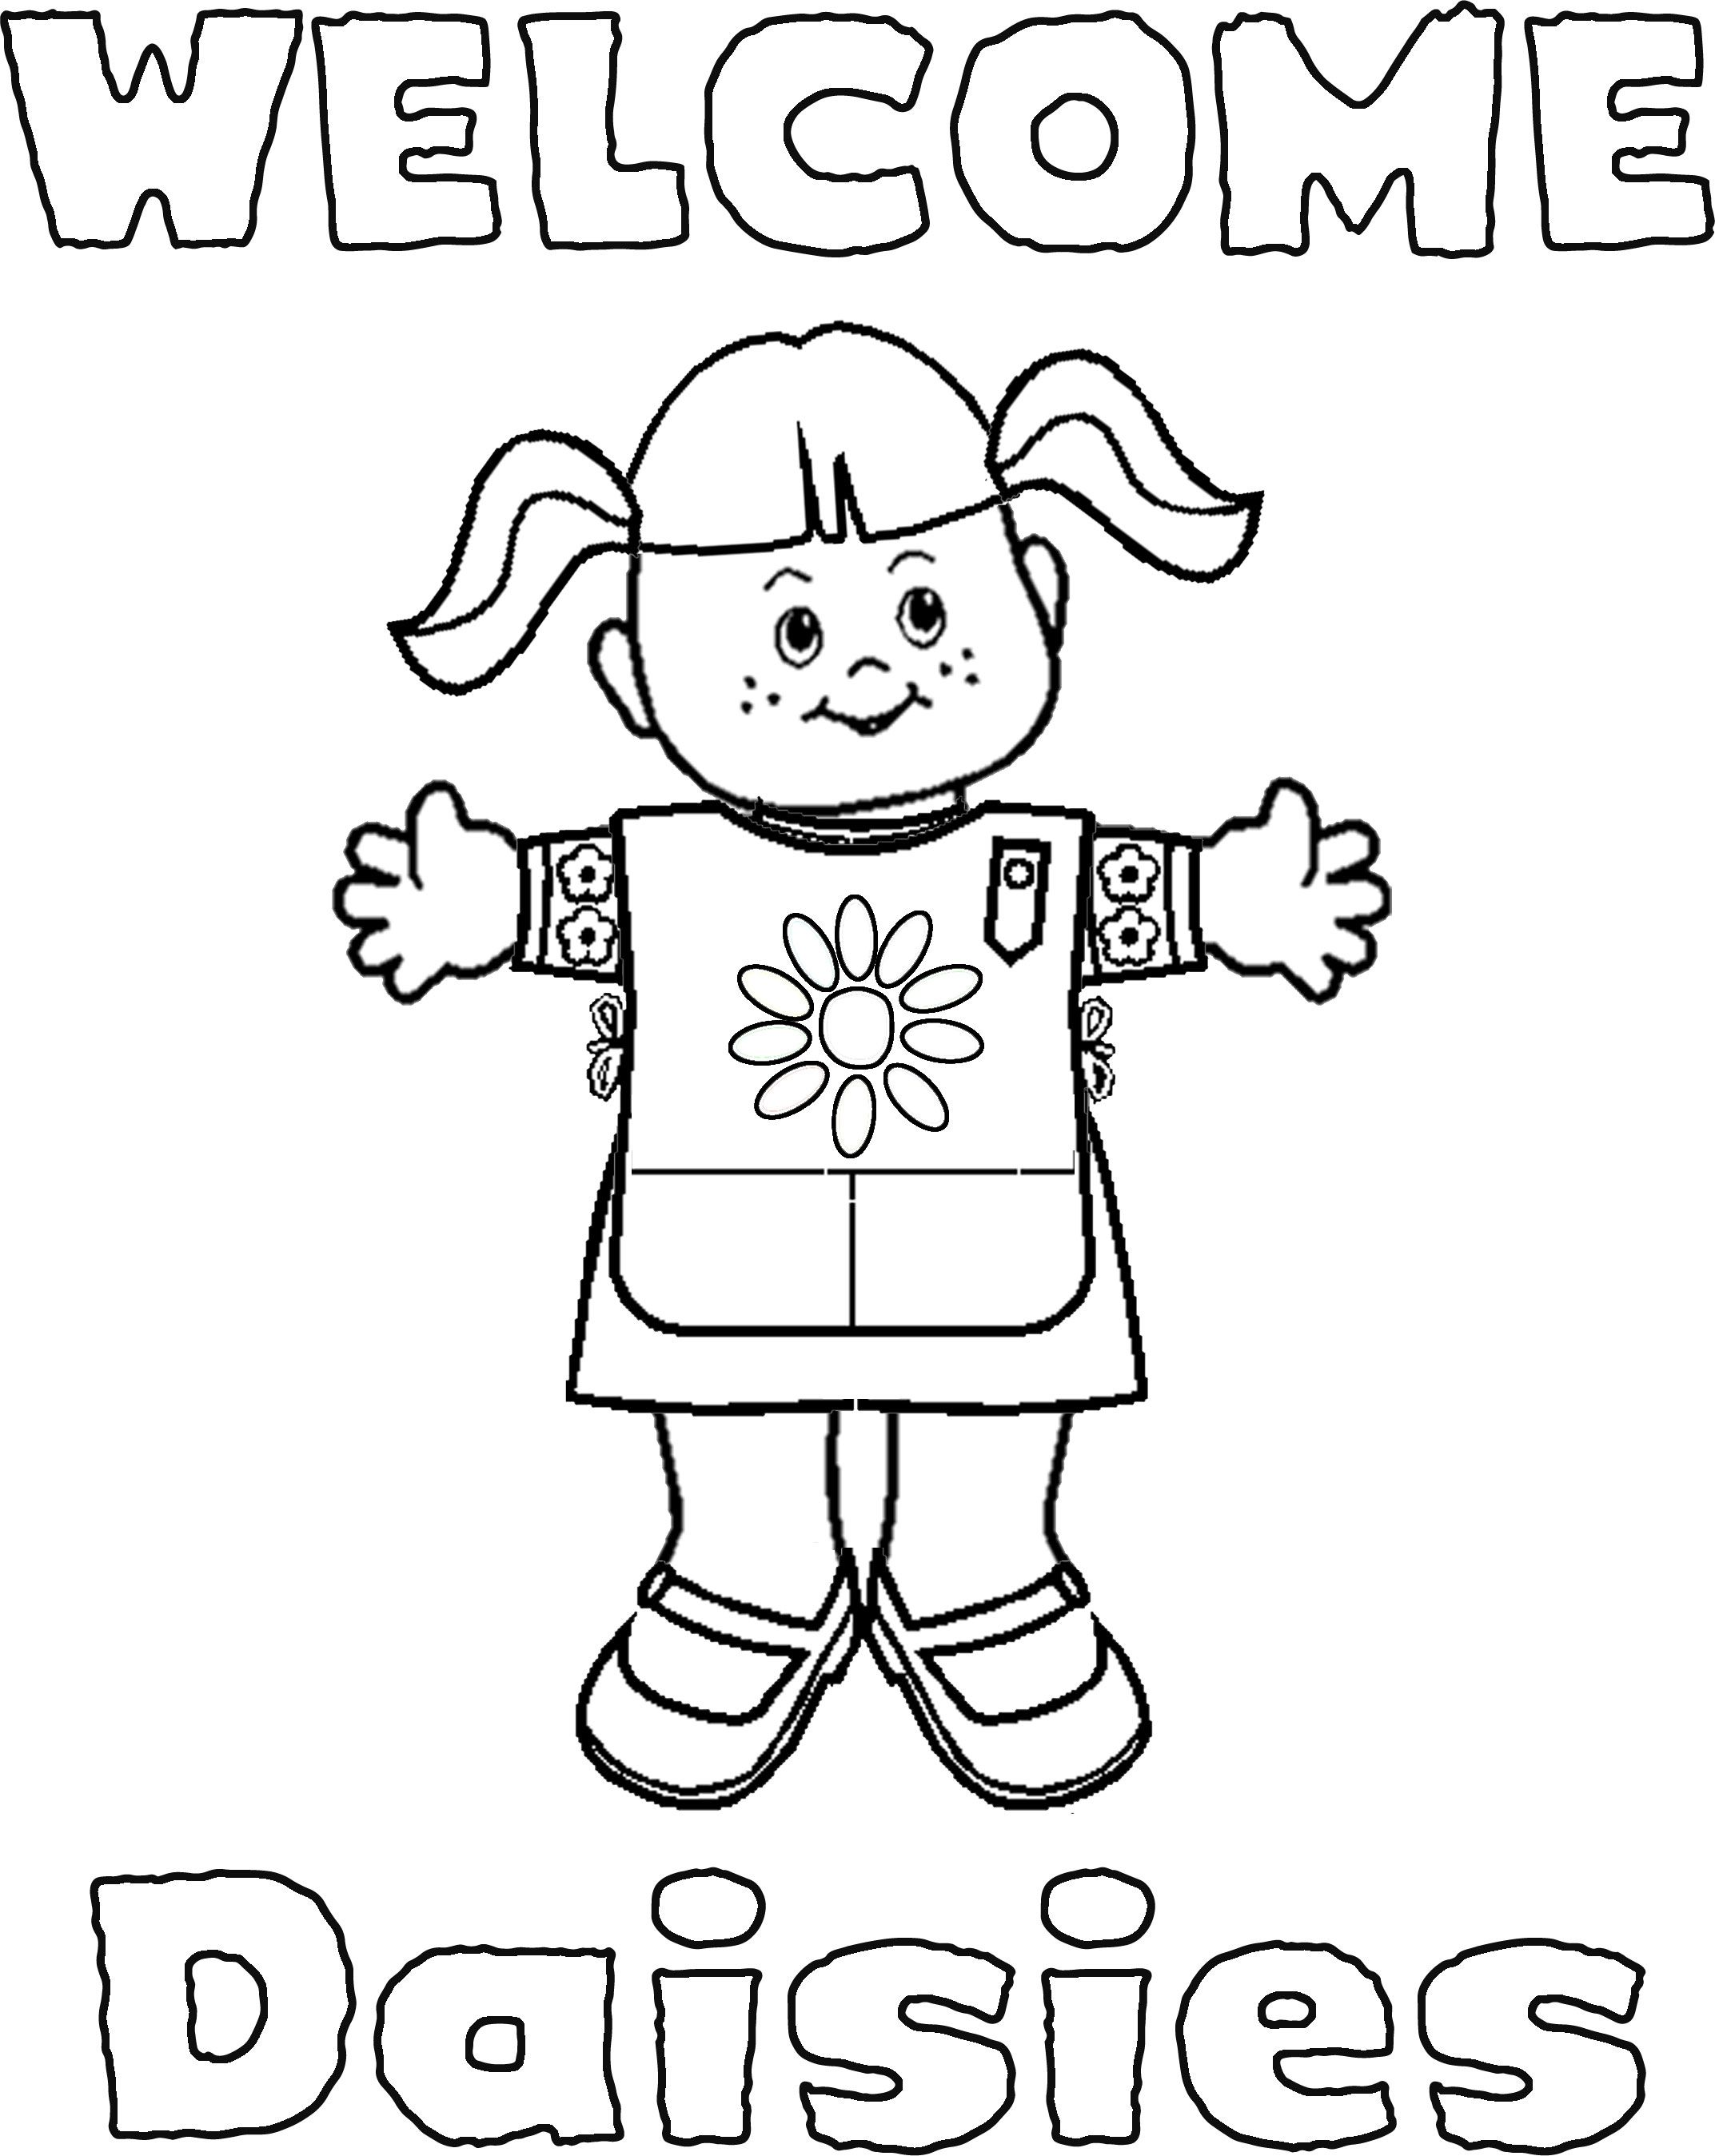 Daisy Coloring Pages | Daisy girl ...